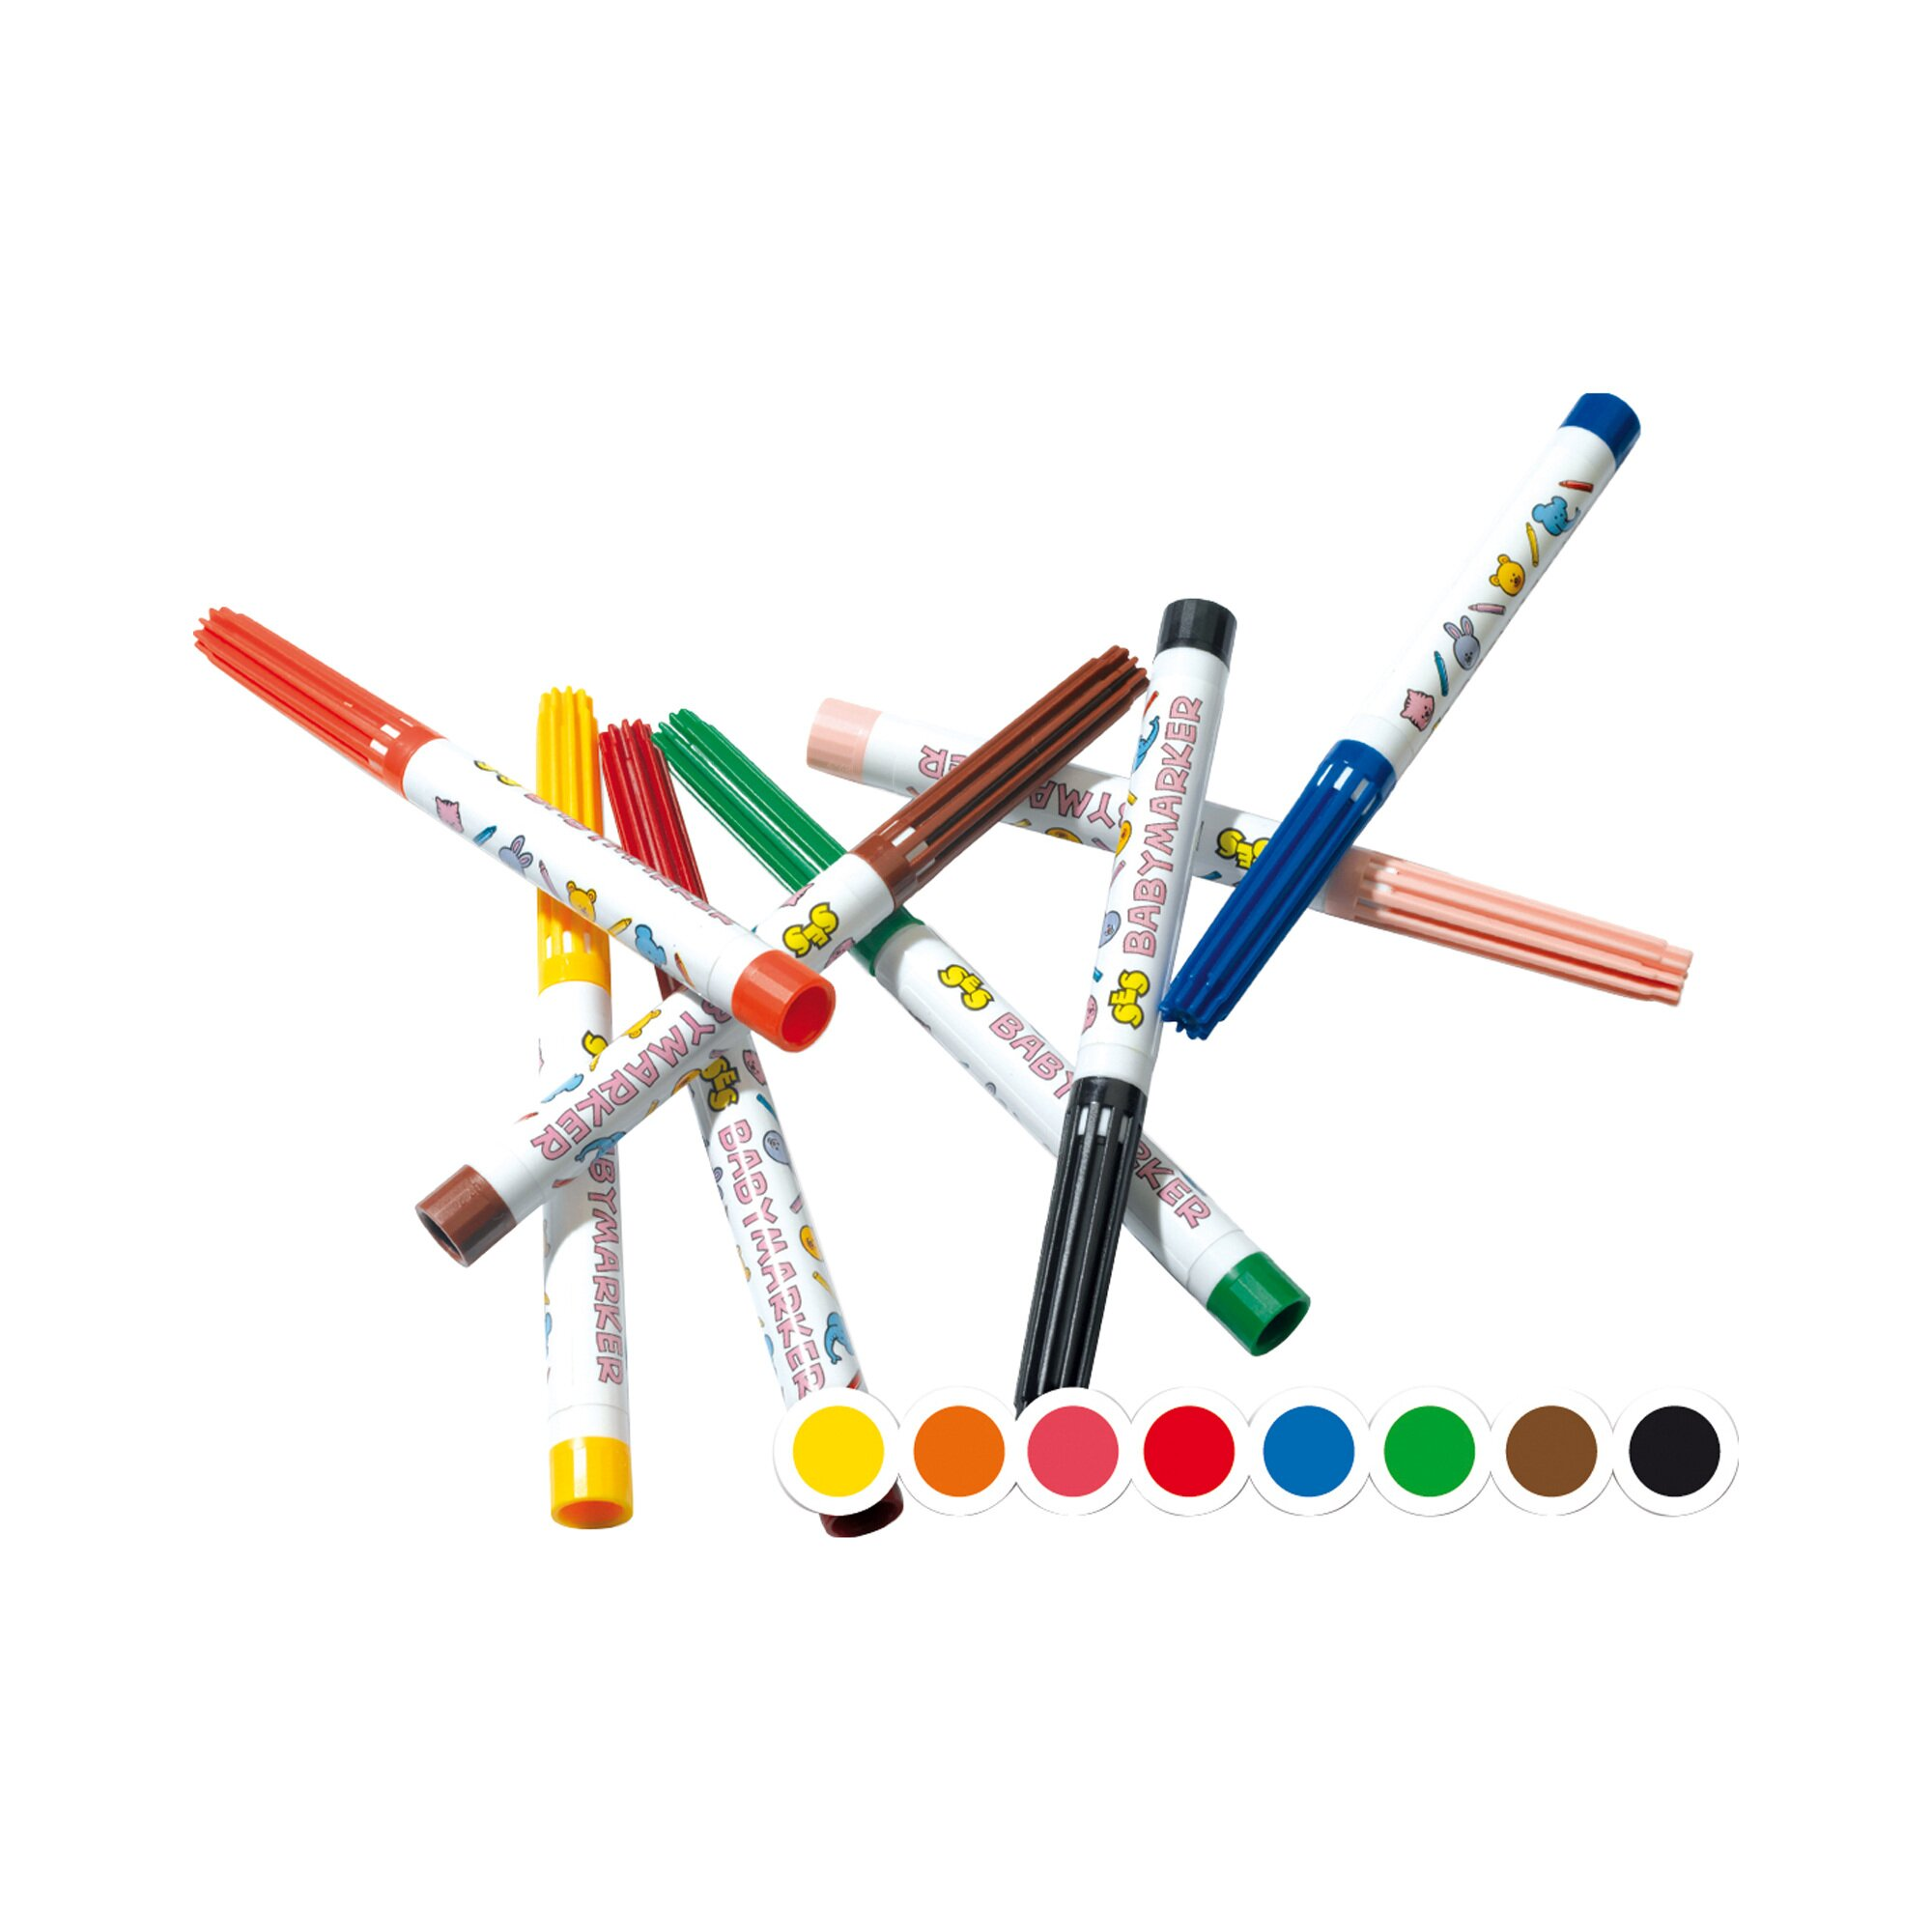 ses-baby-marker-8-farben